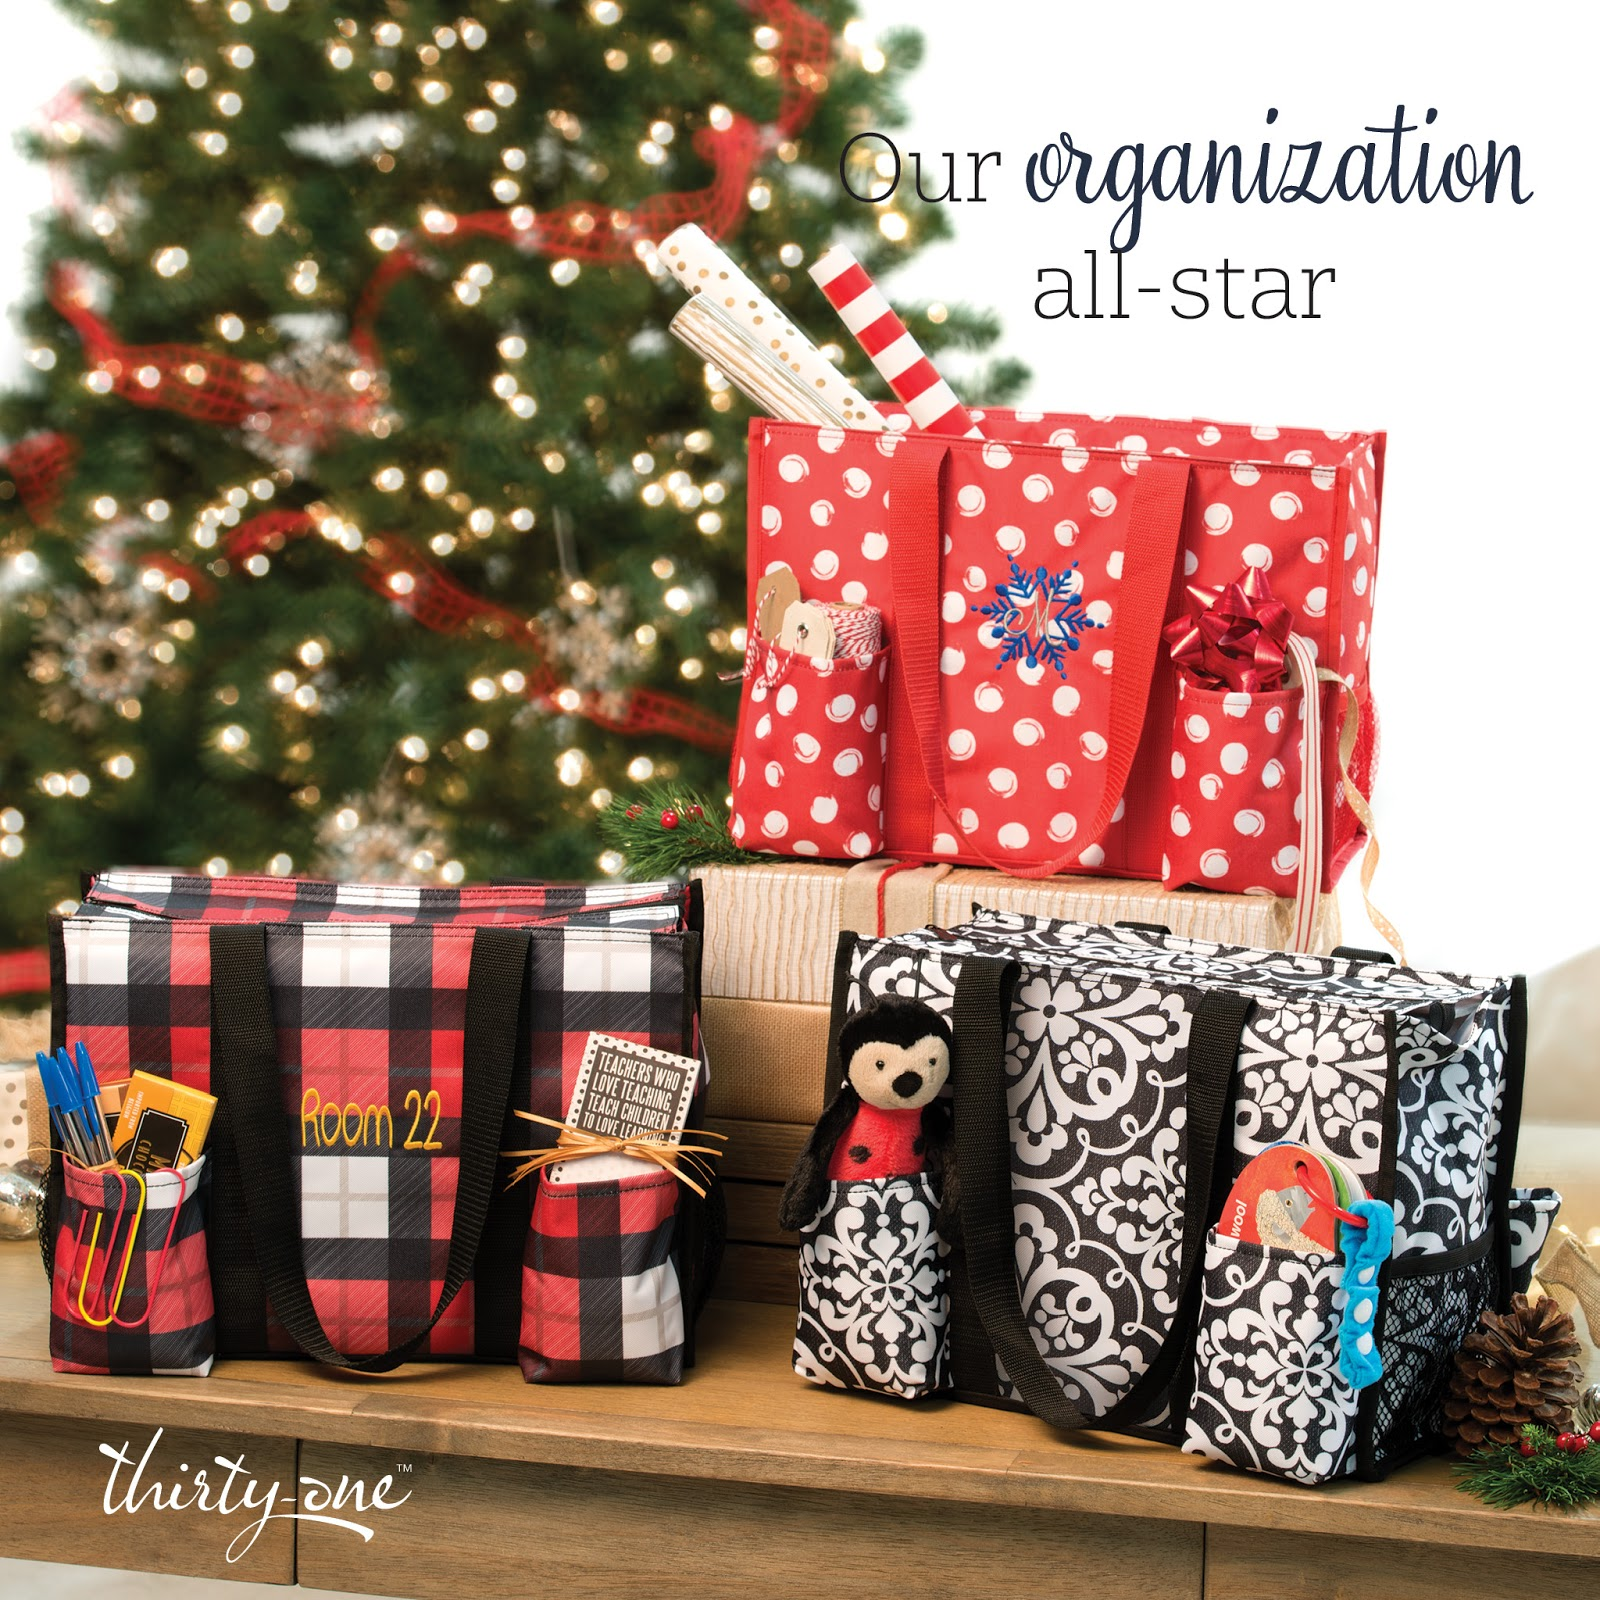 Thirty one november customer special 2014 - Thirty One Gifts November 2016 Customer Special Zip Top Organizing Utility Tote Us